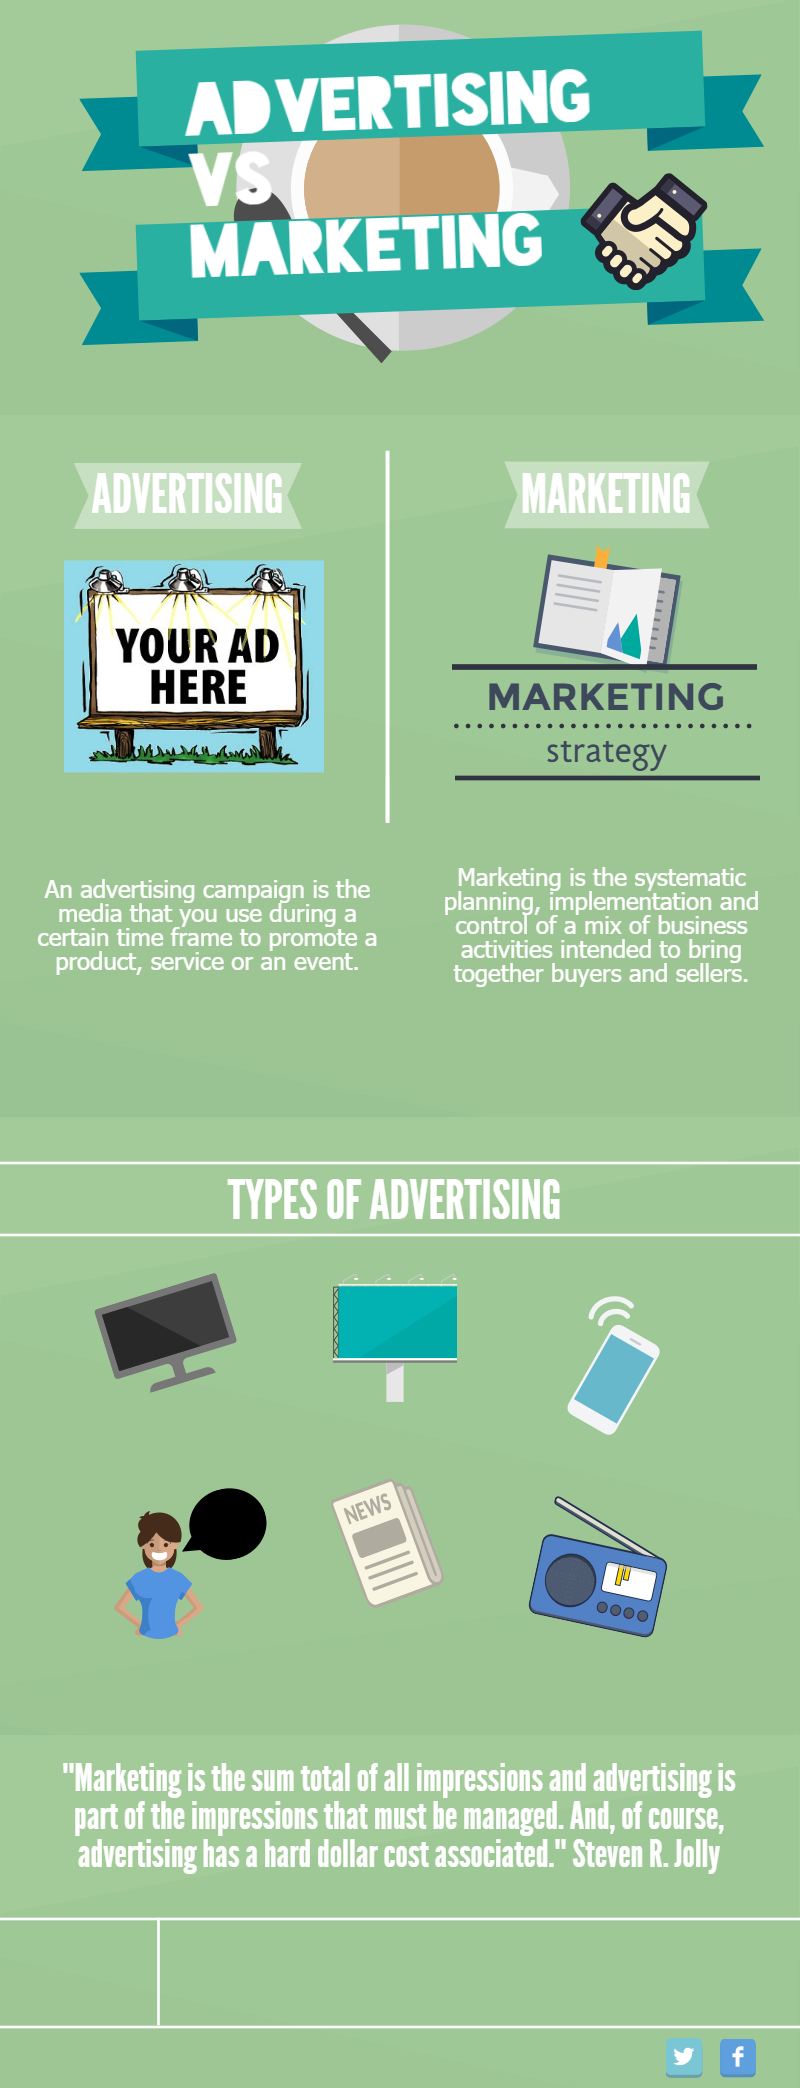 Advertising vs Marketing 6